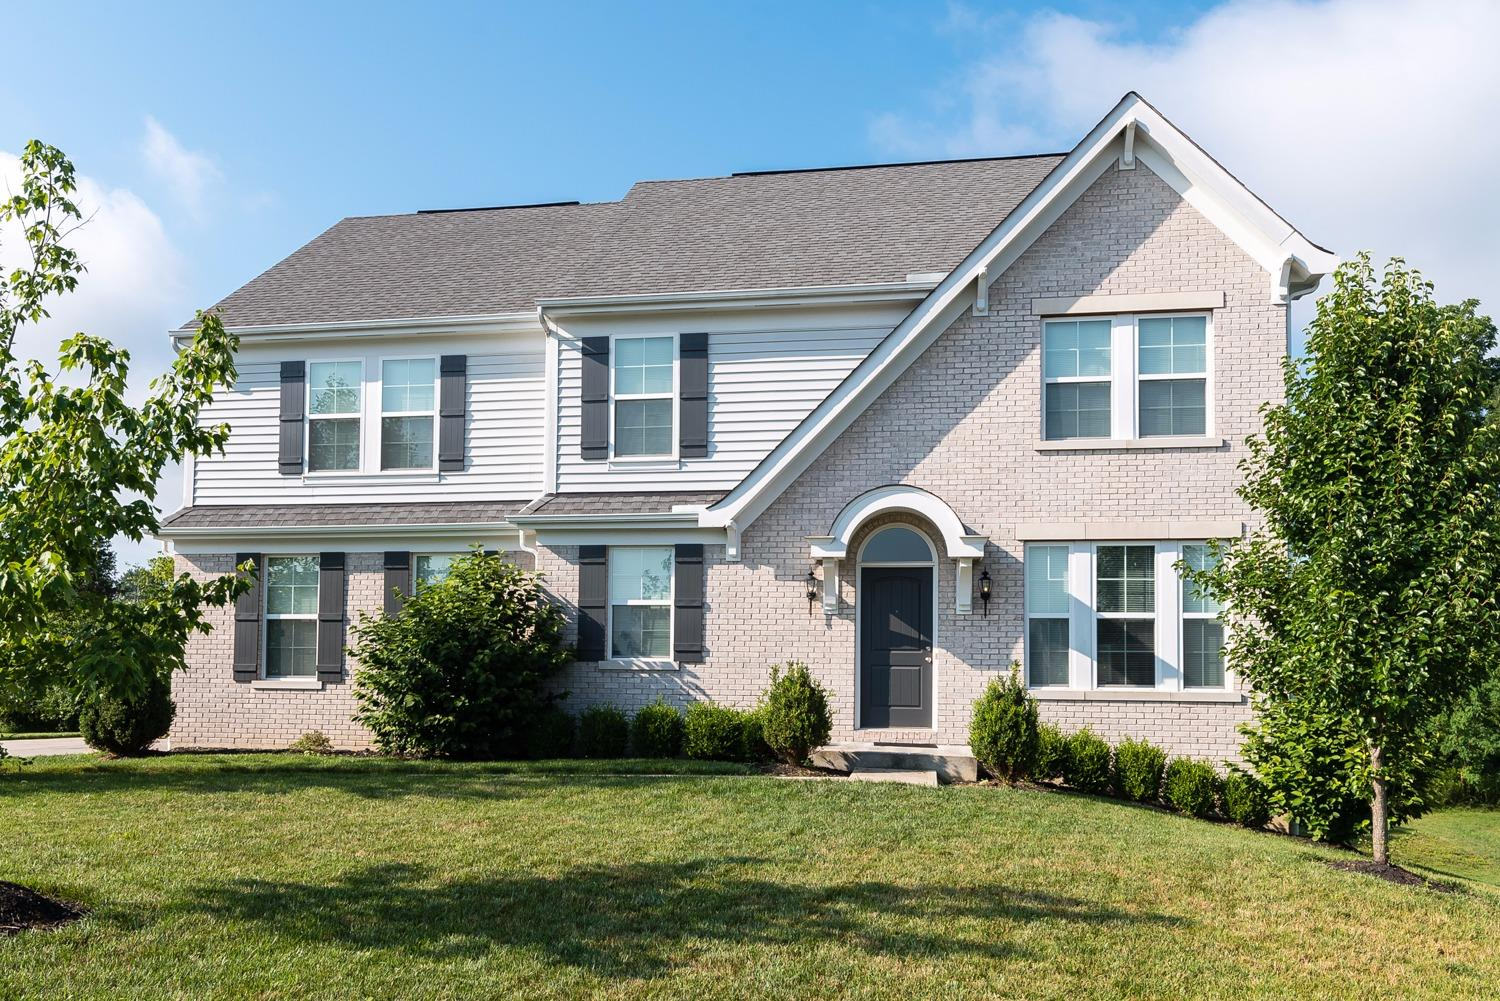 5551 Falling Wood Court, Miami Twp, OH 45150